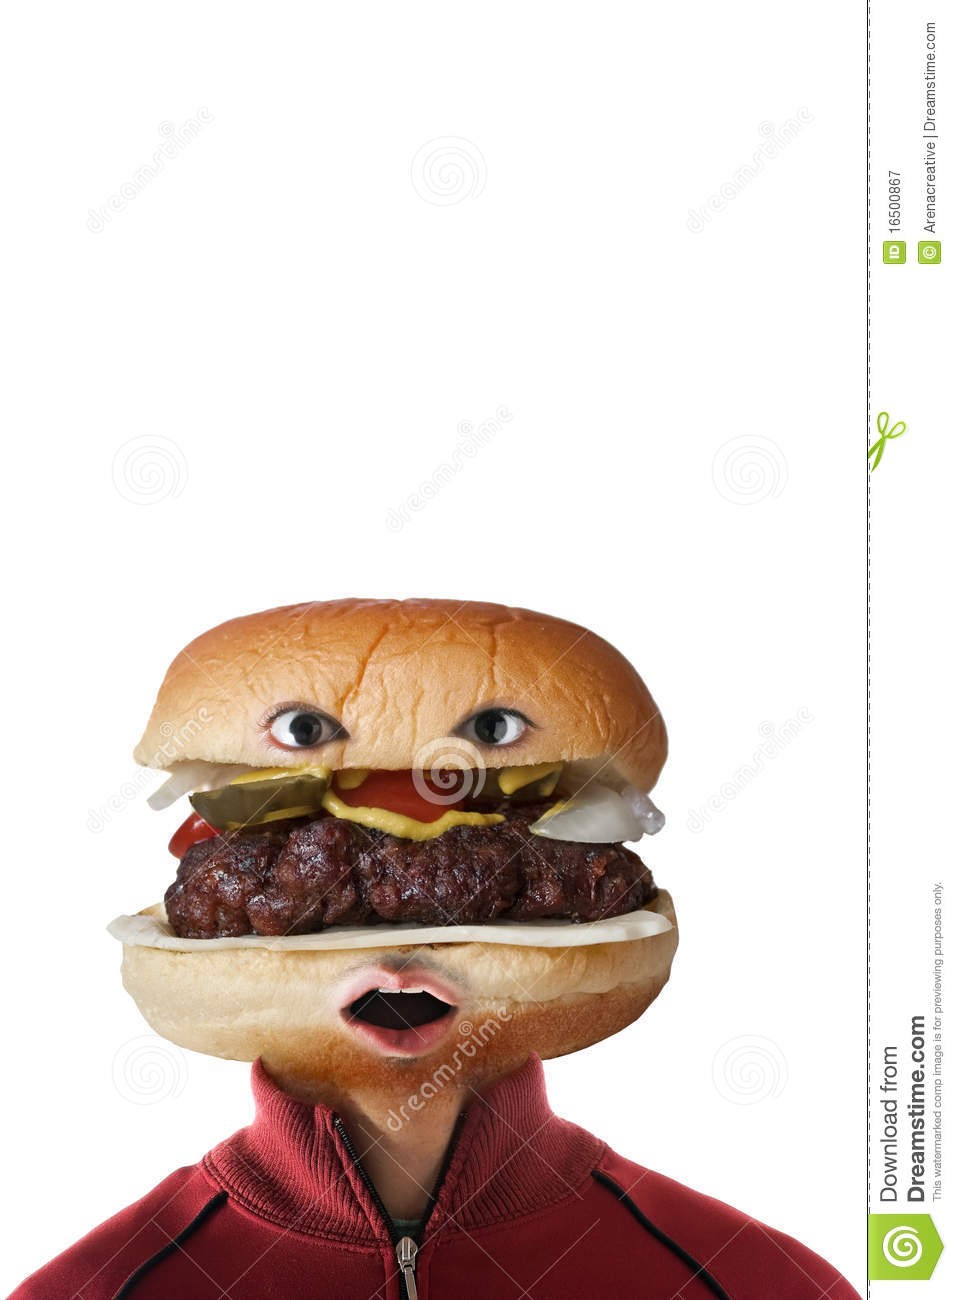 hamburger head